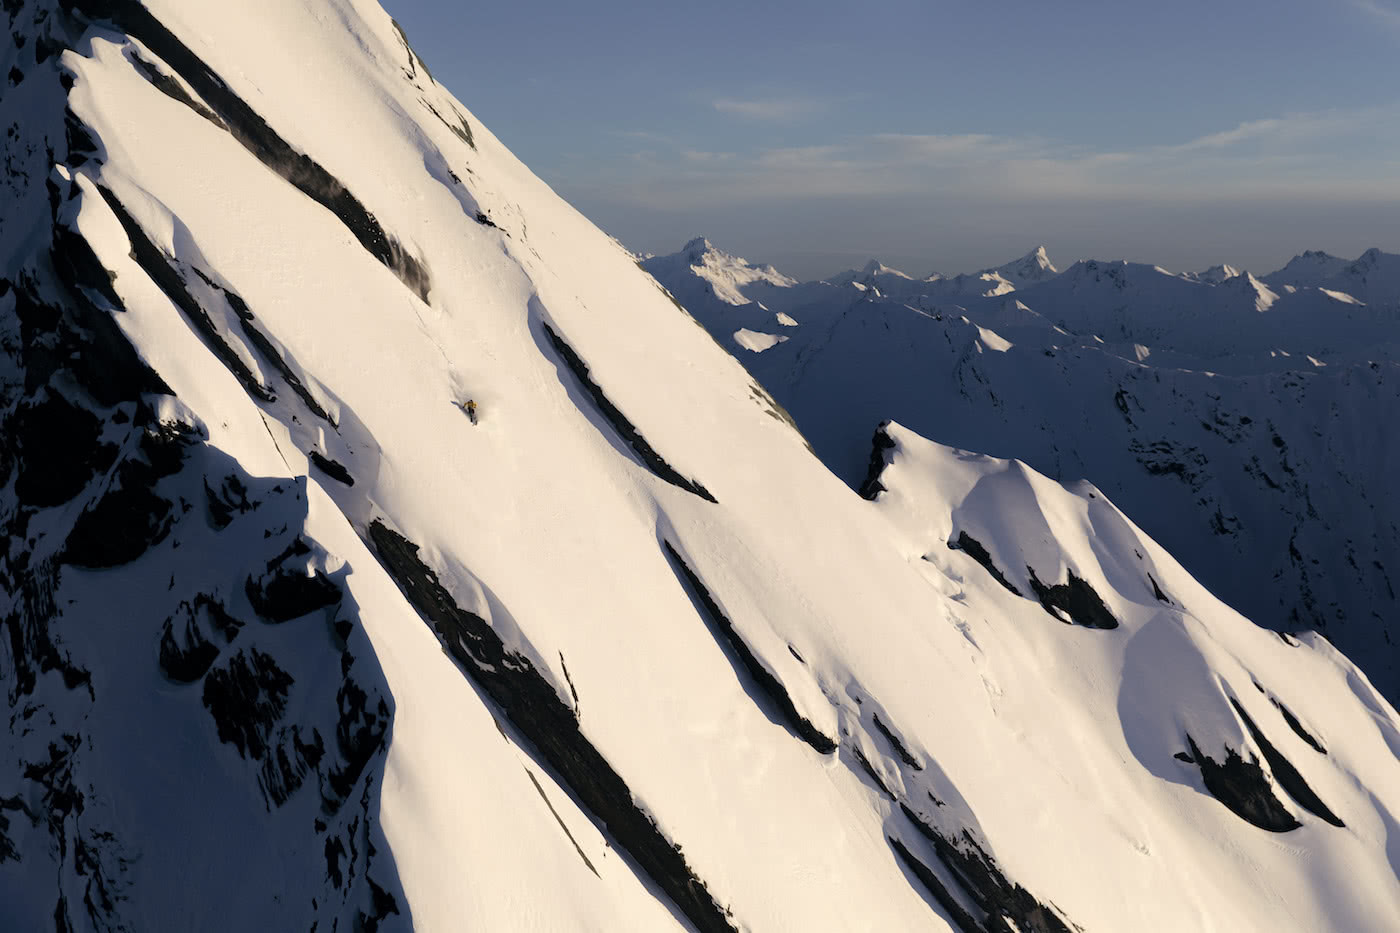 Canon Just Dropped A Stunning Ski Photography Film, photo by Mark Clinton, Canon, skiing, Wanaka, mountains, snow, cameras